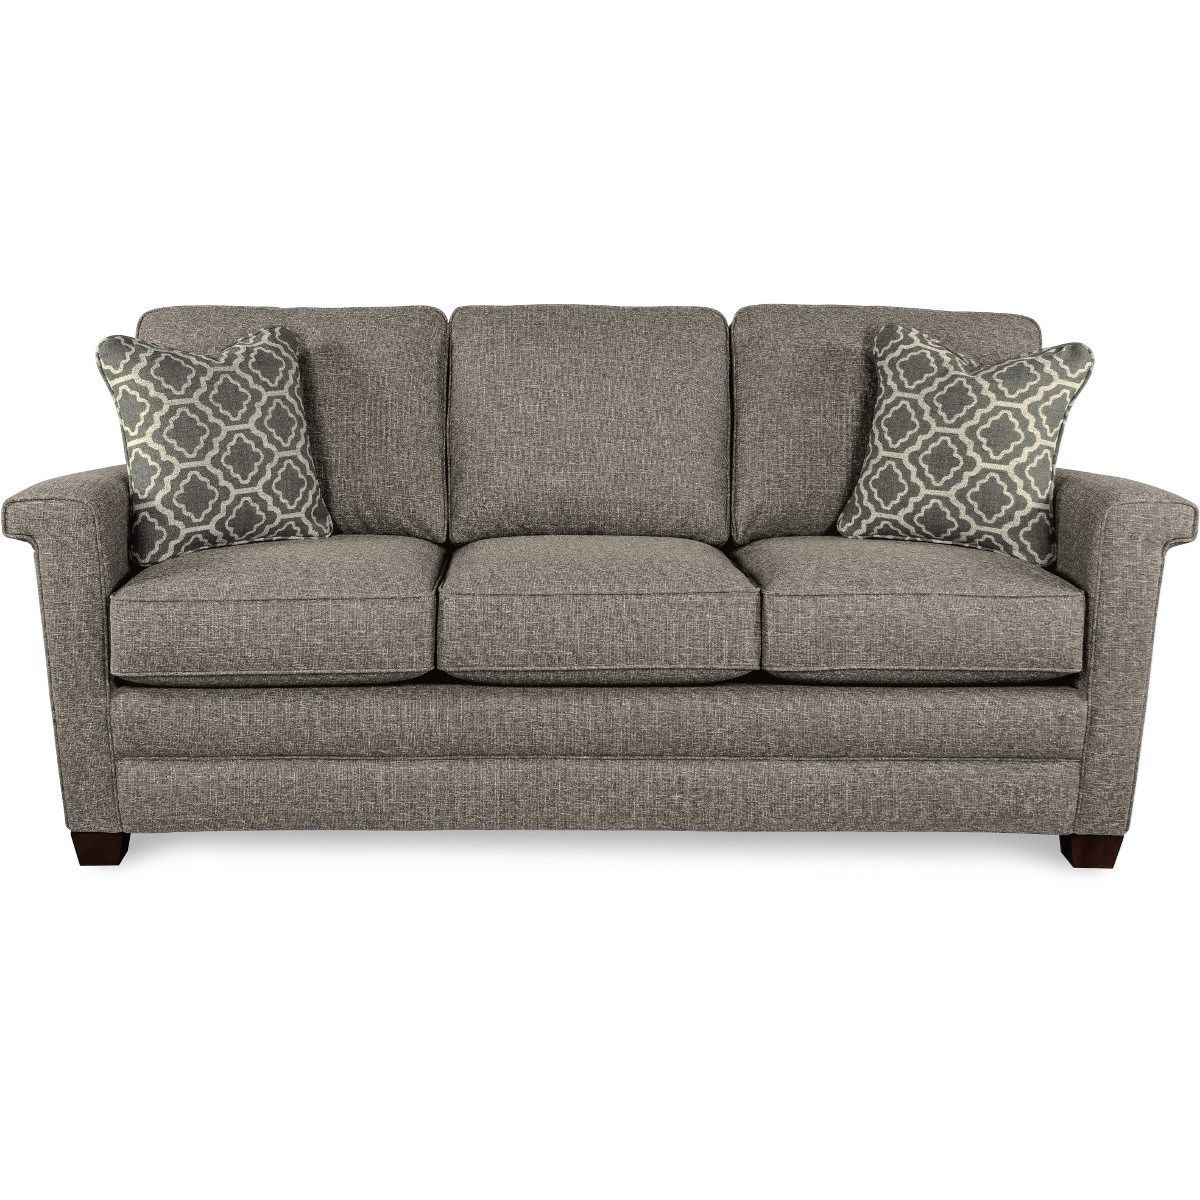 Contemporary Couch Bexley Contemporary Sofa By La Z Boy At Godby Home Furnishings